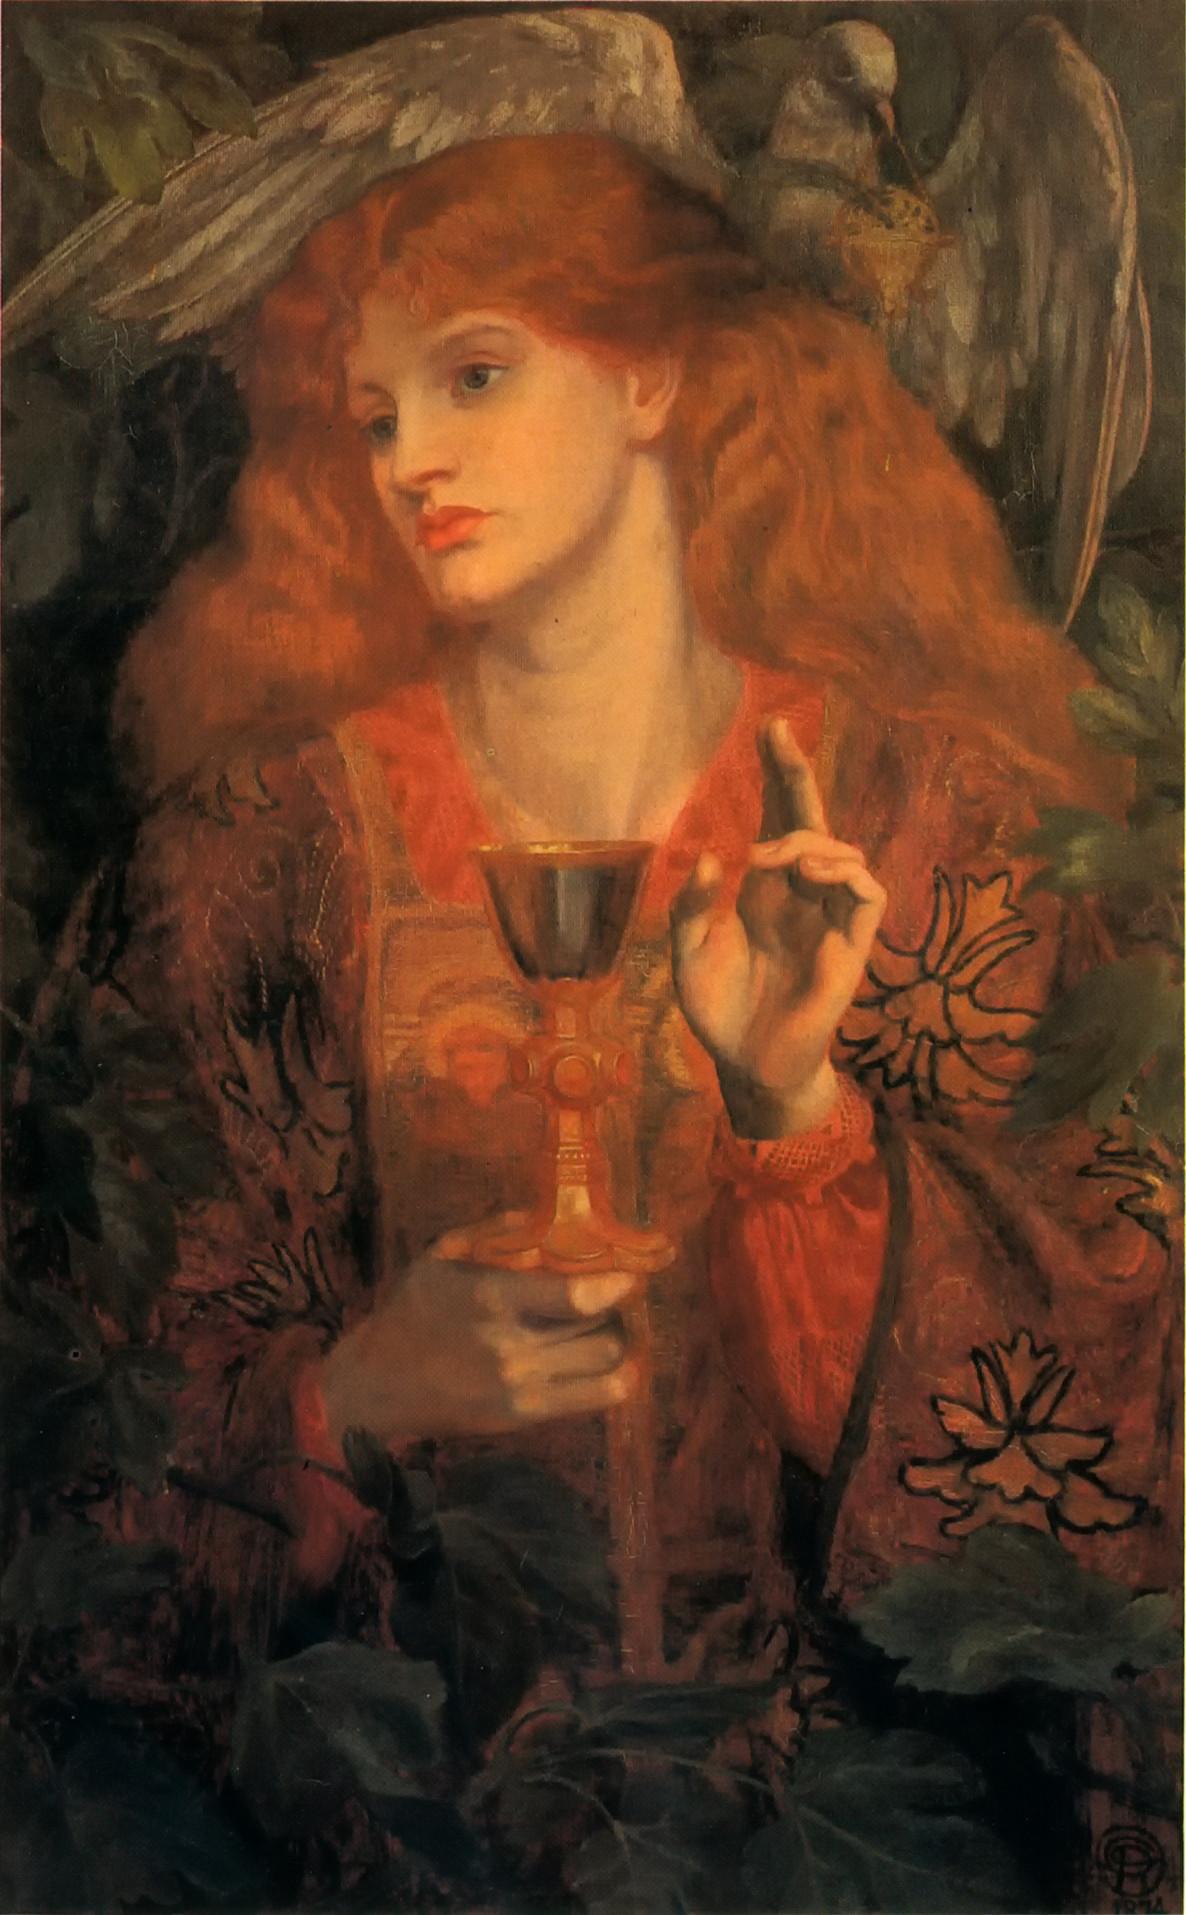 Damsel of the Sanct Grael by Dante Gabriel Rossetti - 1874